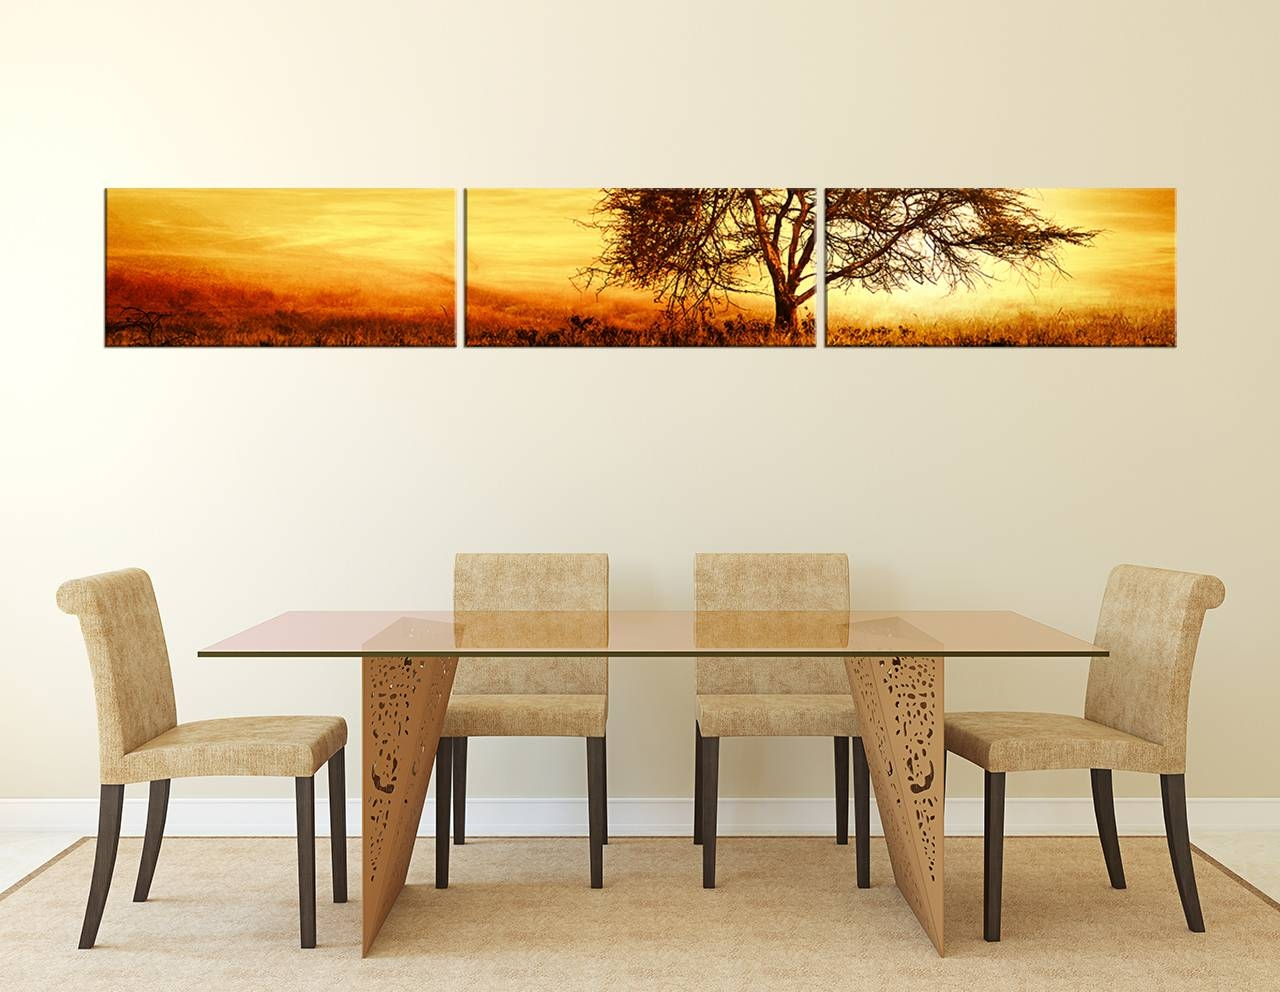 Cool Wall Decor Piece Large Pictures Dining Multi Piece Wall Art In Most Up To Date Multiple Piece Wall Art (View 4 of 20)